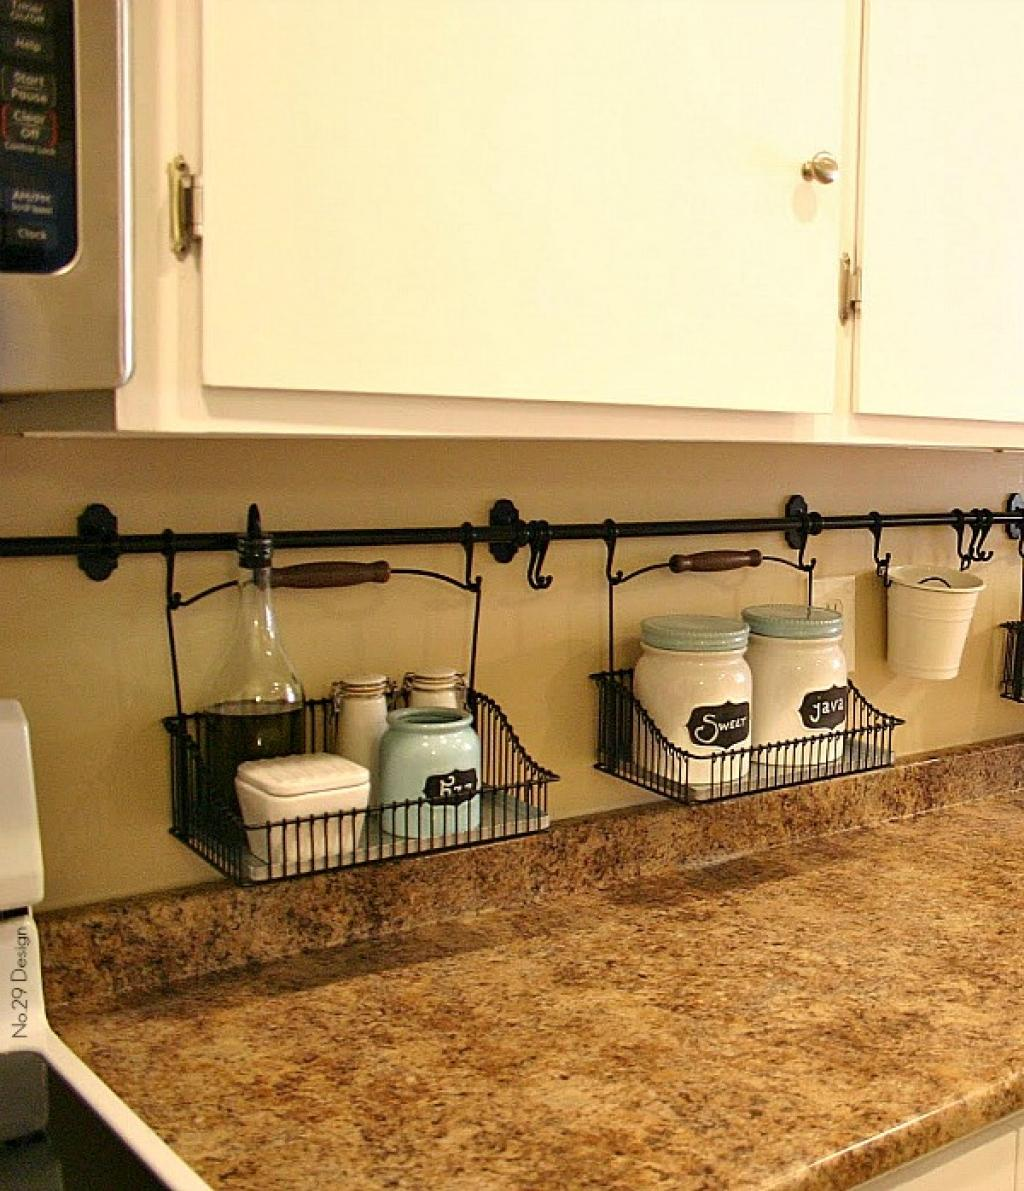 best kitchen organization ideas kitchen organization ideas 16 Attractive Hanging Wire Baskets Hold Items You Need On Hand